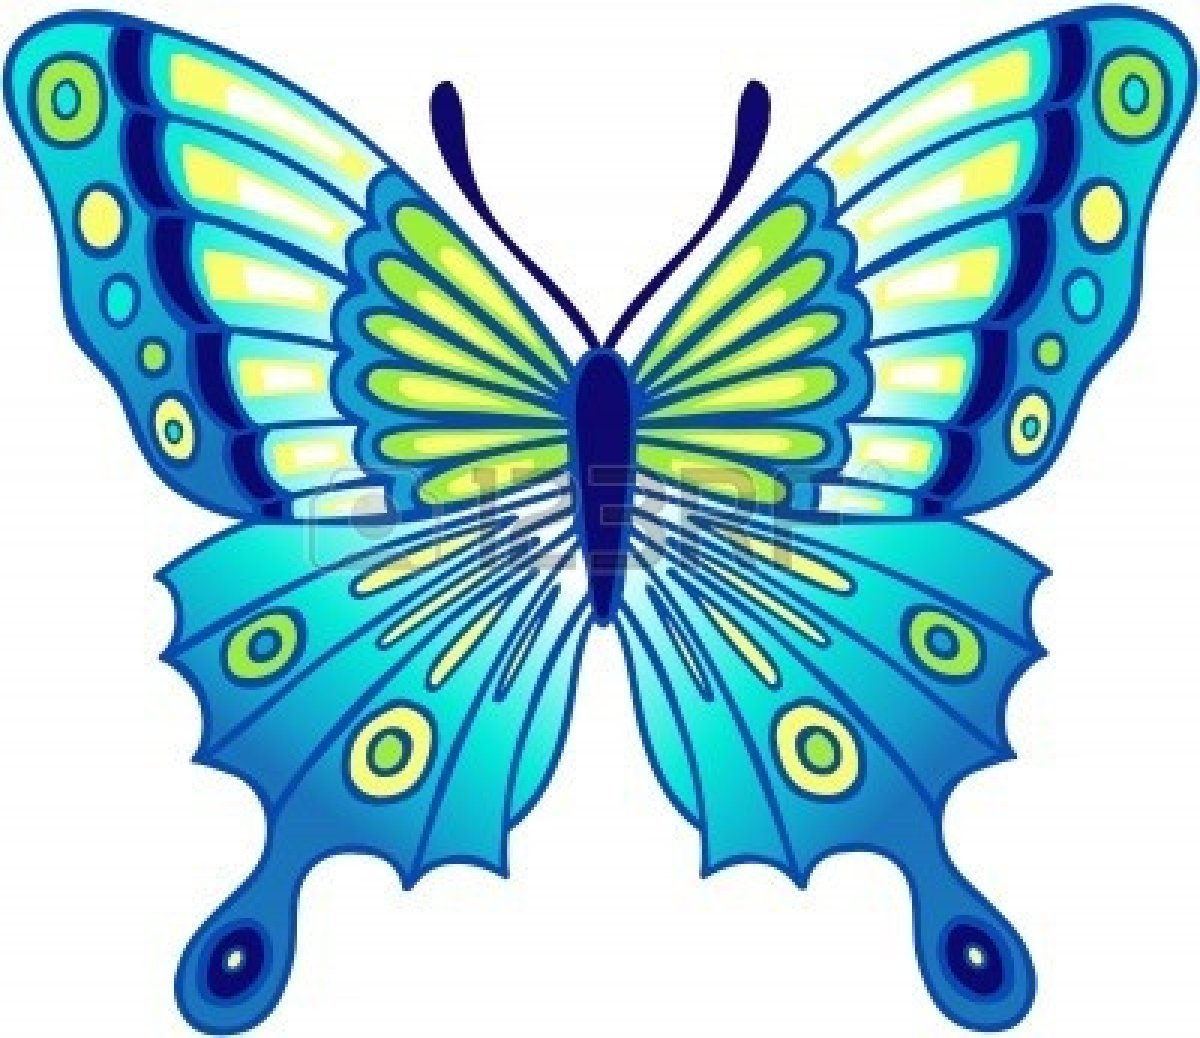 Free butterfly pictures clipart jpg library download Butterfly Pic Clipart | Free download best Butterfly Pic Clipart on ... jpg library download